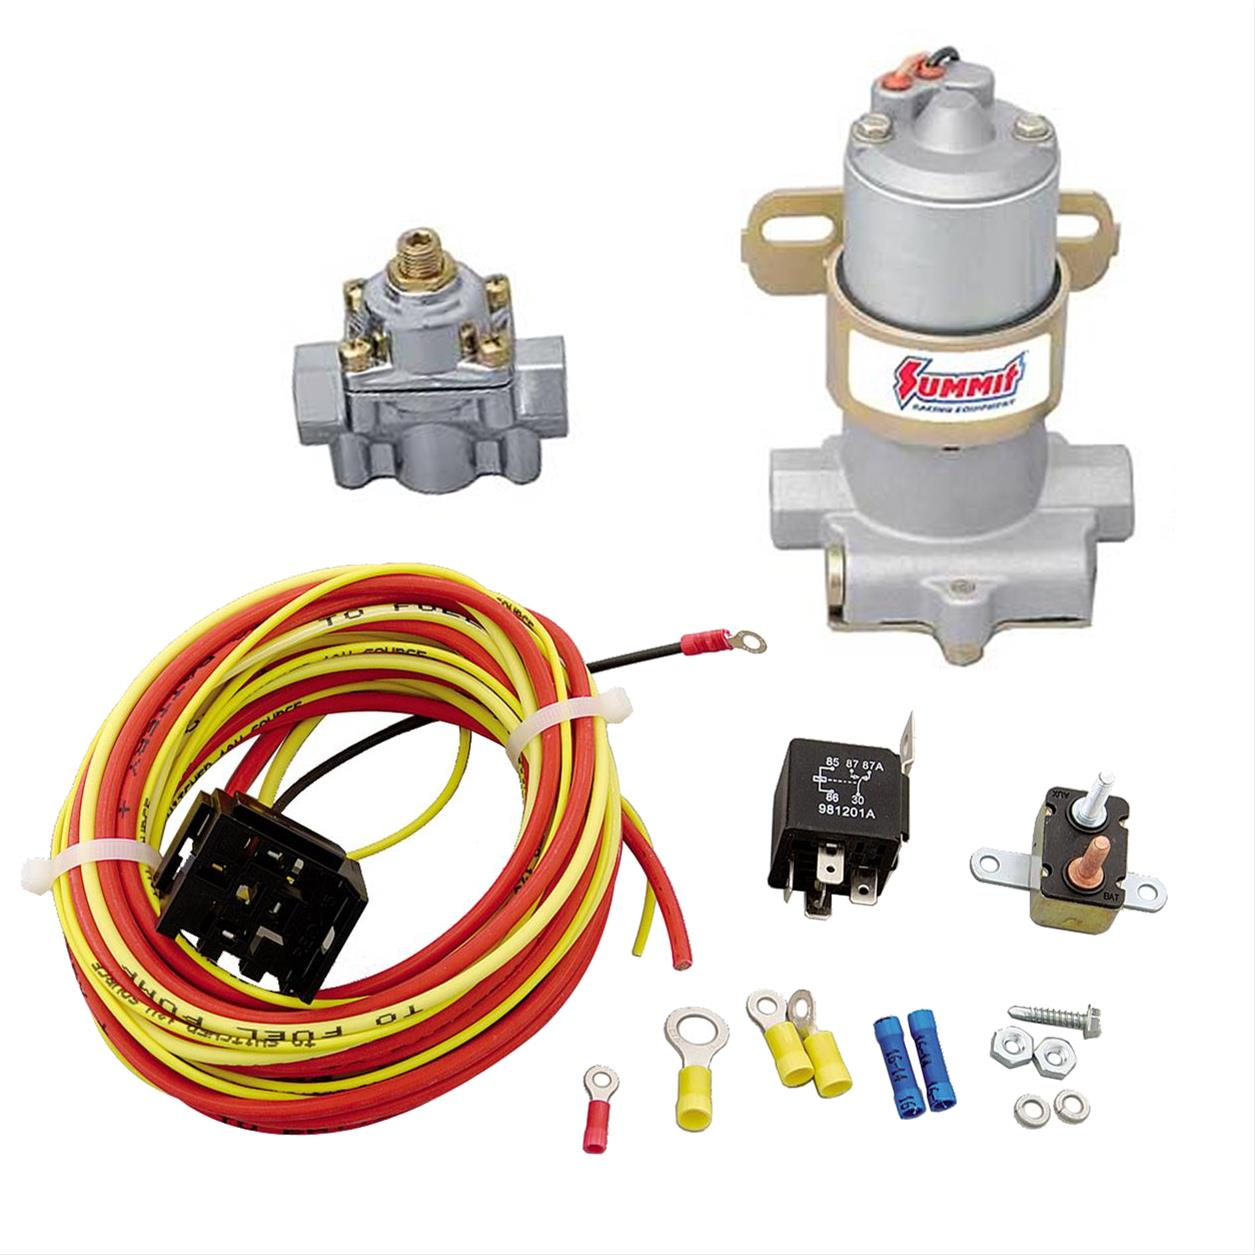 summit racing 105 gph 14 psi max electric fuel pump \u0026 30 amp relay Fuel Pump Harness Connector Problems details about summit racing 105 gph 14 psi max electric fuel pump \u0026 30 amp relay kit combo